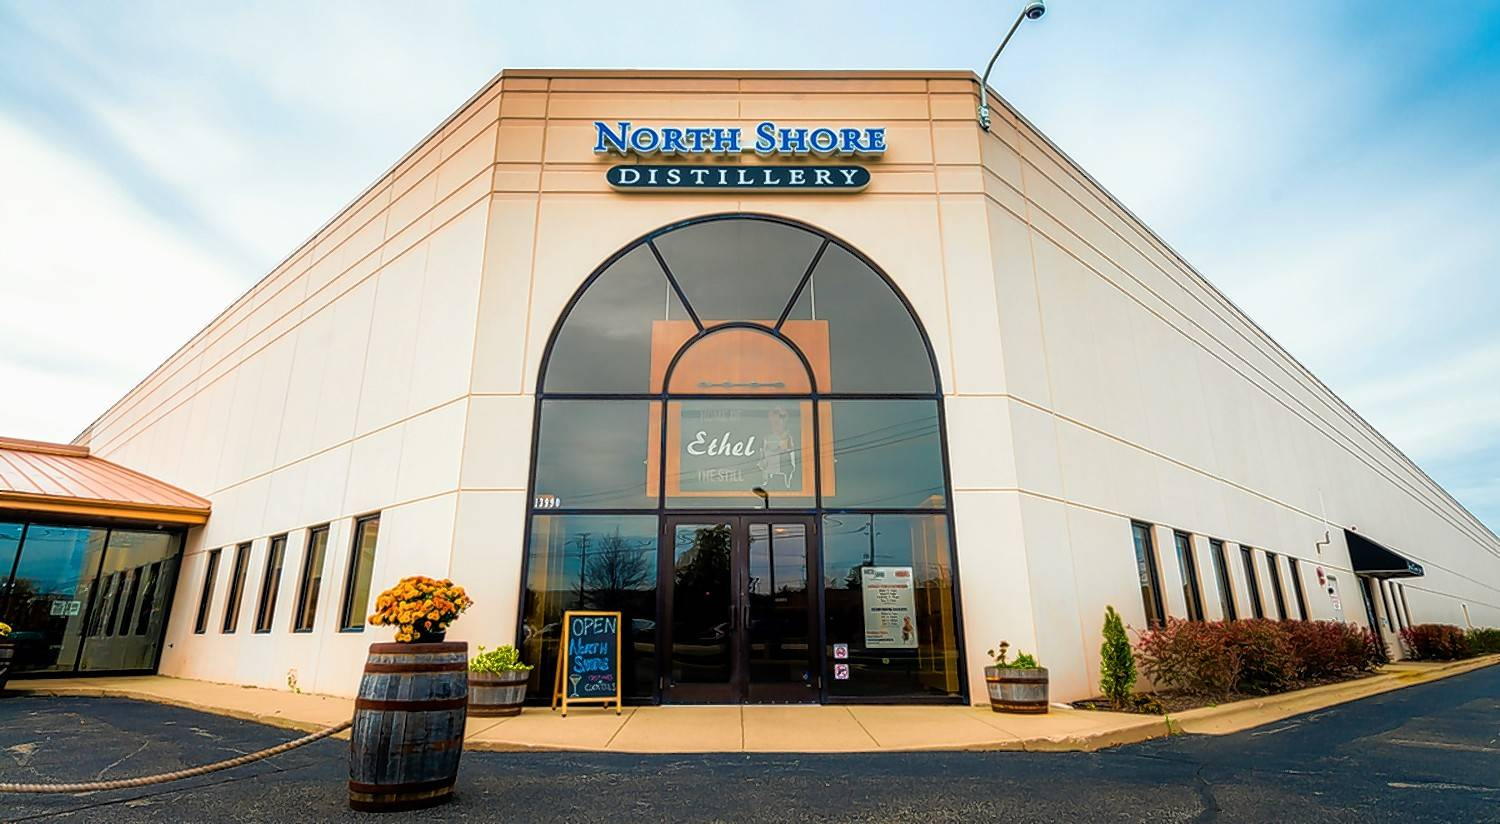 Green Oaks' North Shore Distillery offers tours that include a bit of history and tastings.